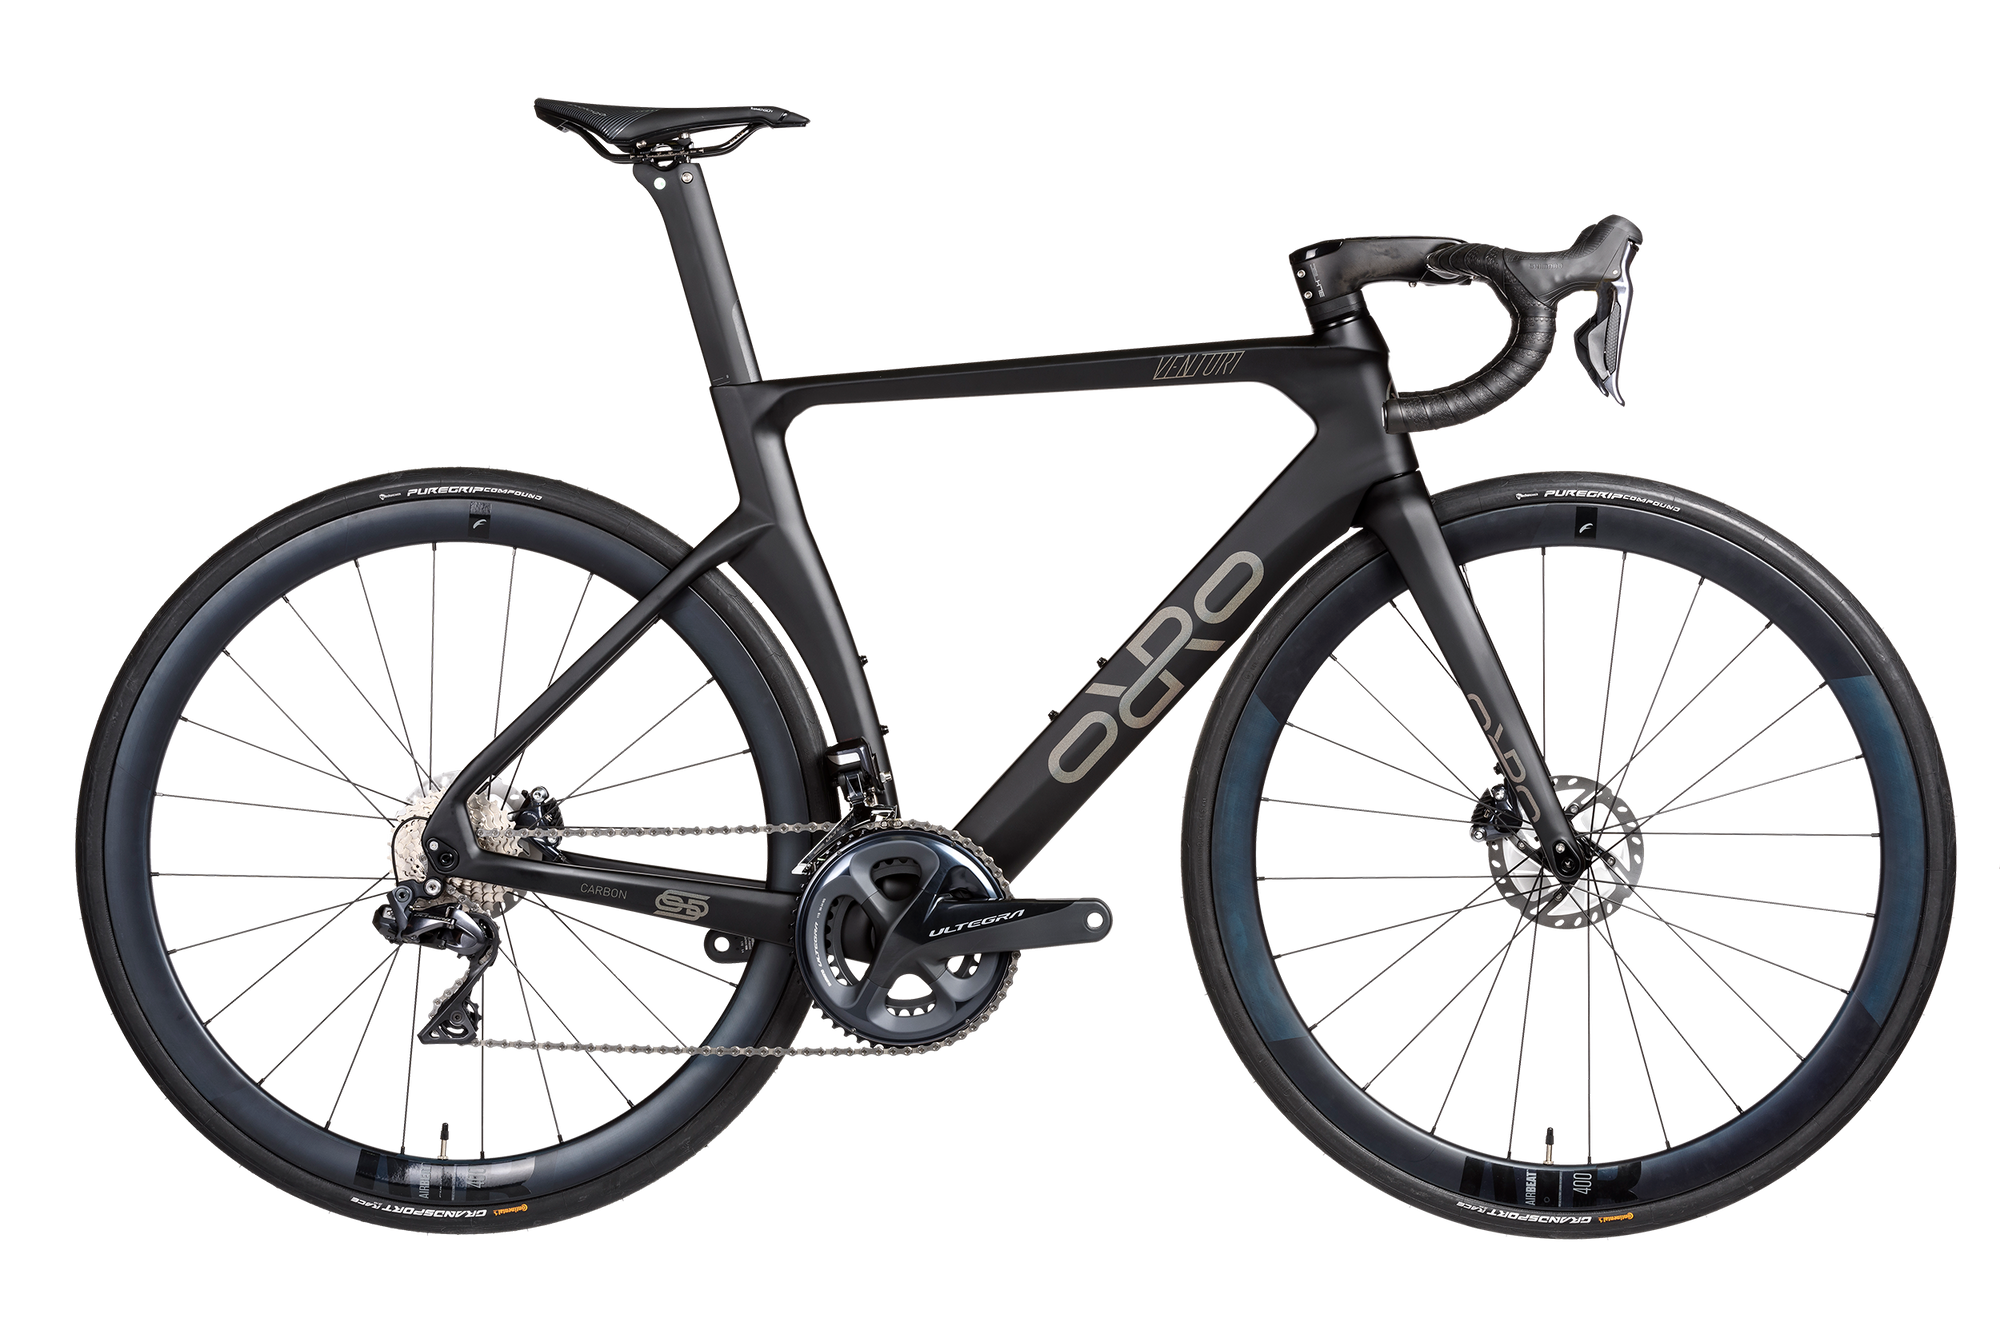 2021 Venturi Ultegra Di2 Tailor Made Bike